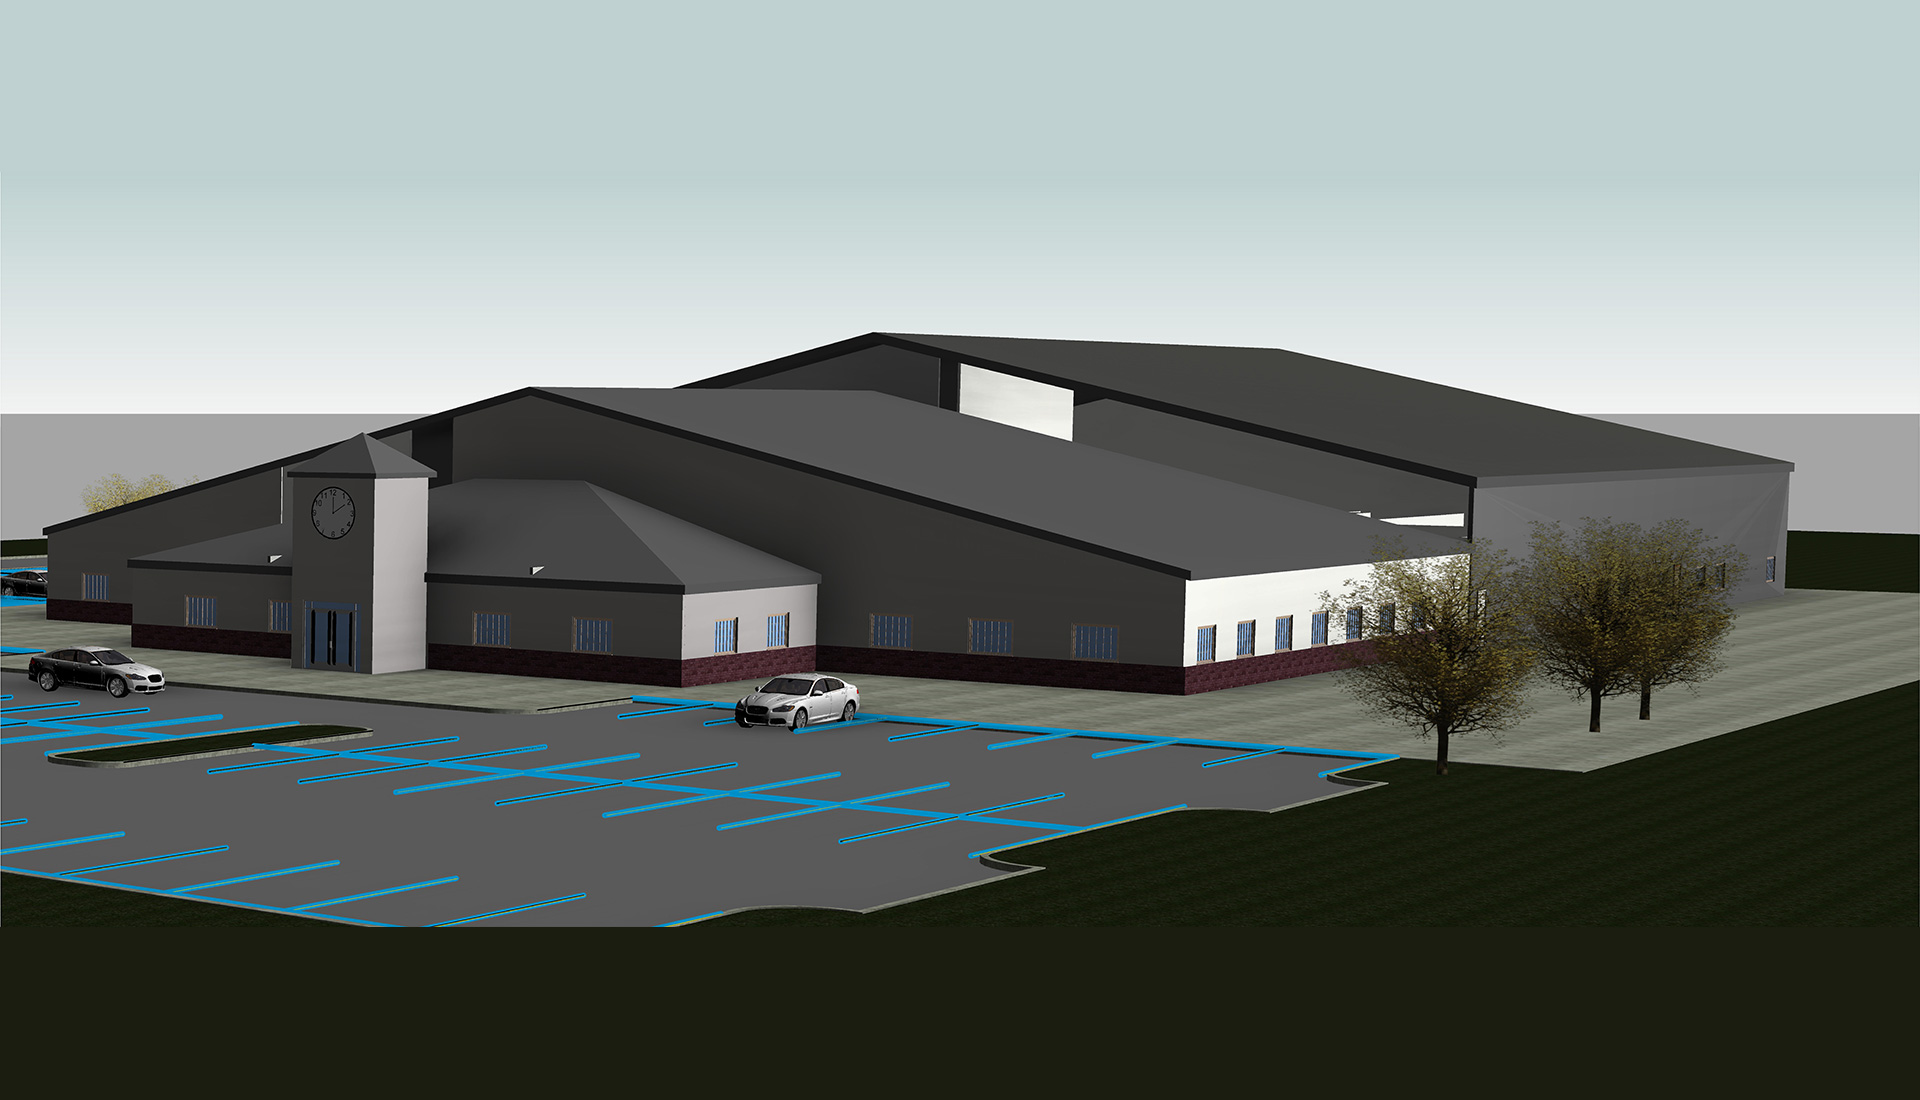 3D-Architectural-Model-with-Parking_Factory-Facility_Accutime-Systems_Industrial-Project_Revit-Modeling-by-United-BIM